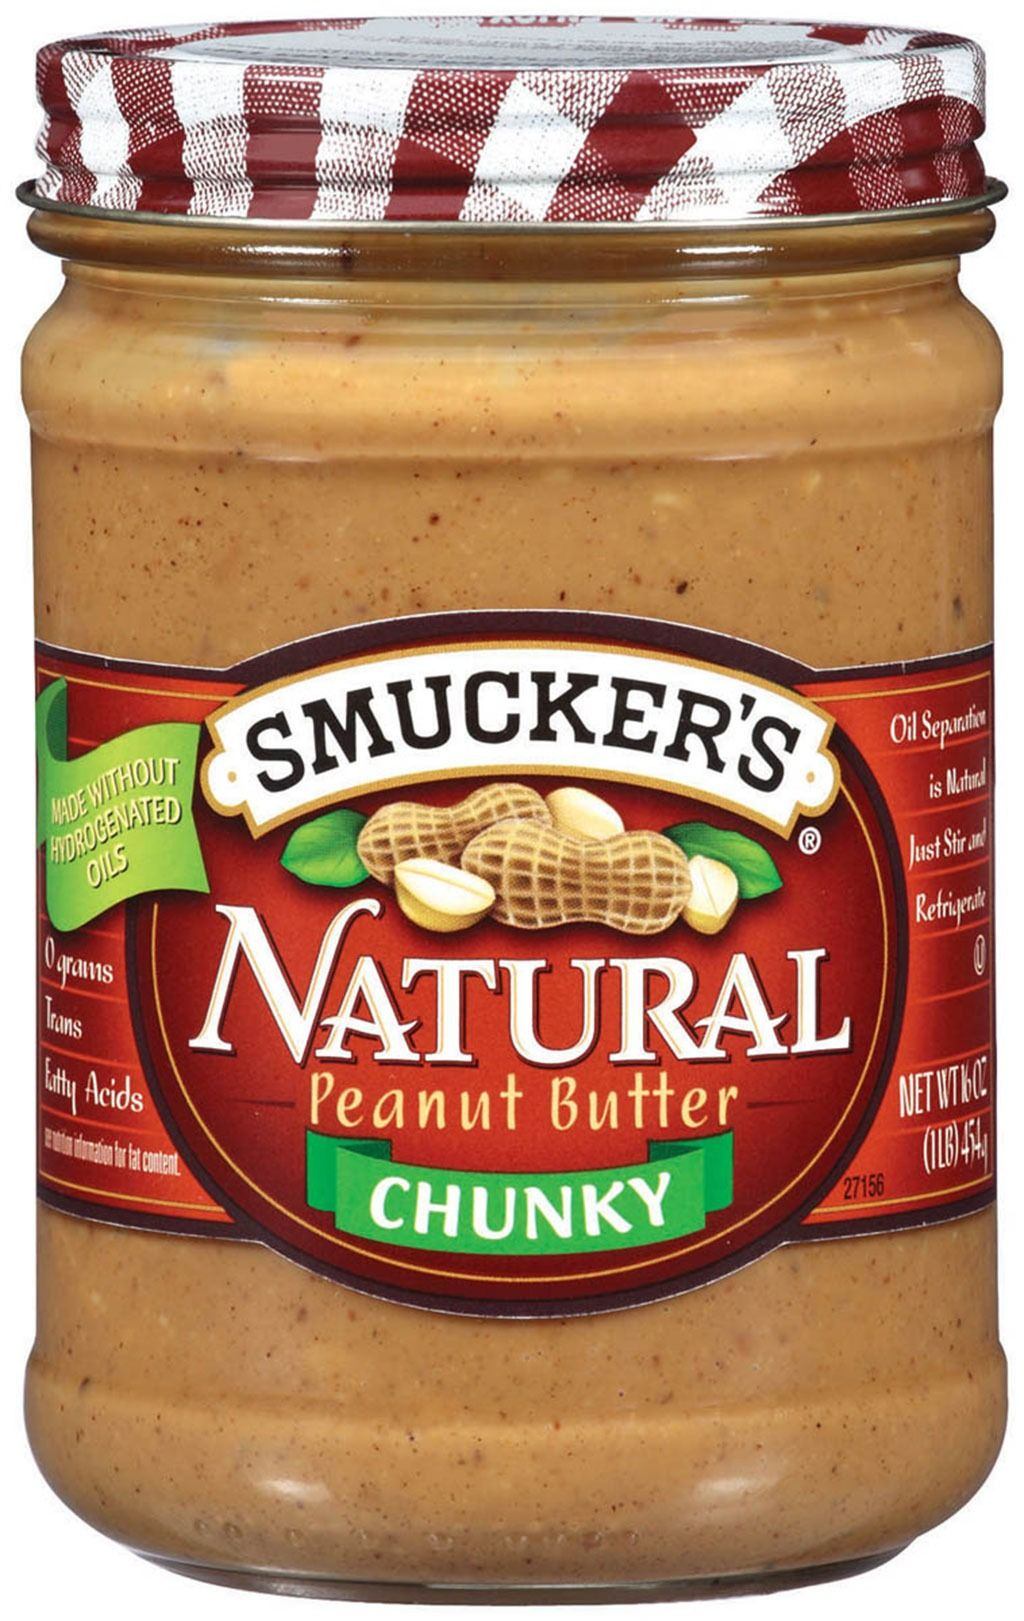 The Worst Peanut Butter and Almond Butter Brands for Weight Loss